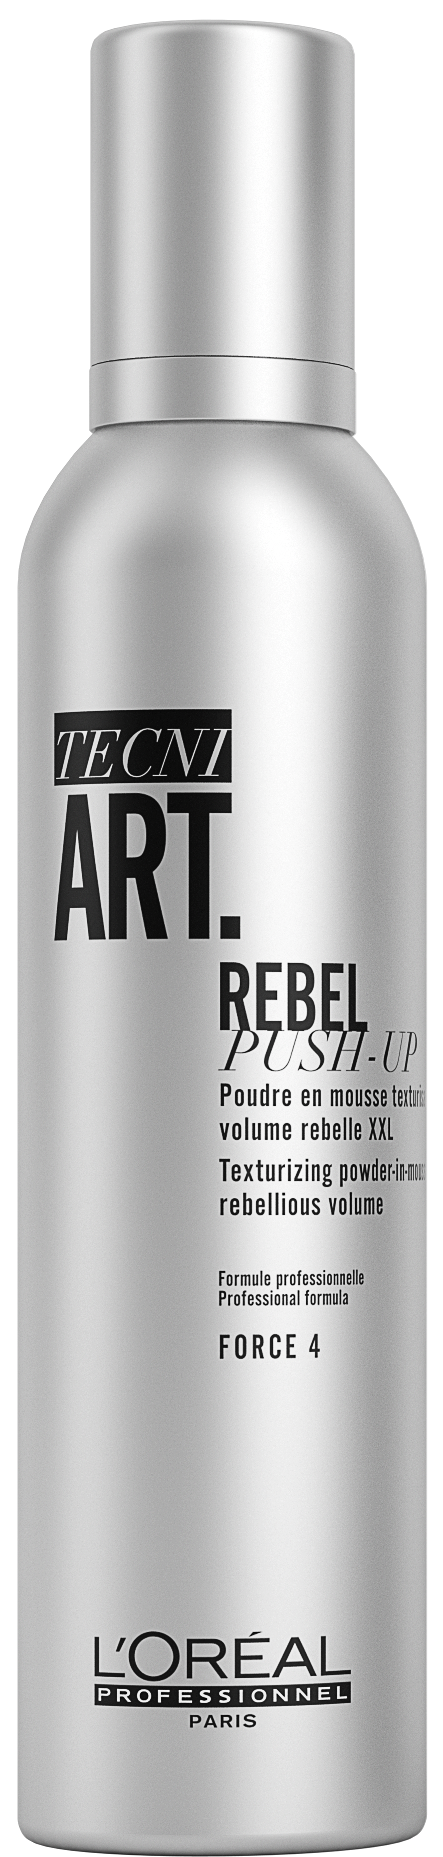 L'Oreal Professionnel Rebel Push-Up